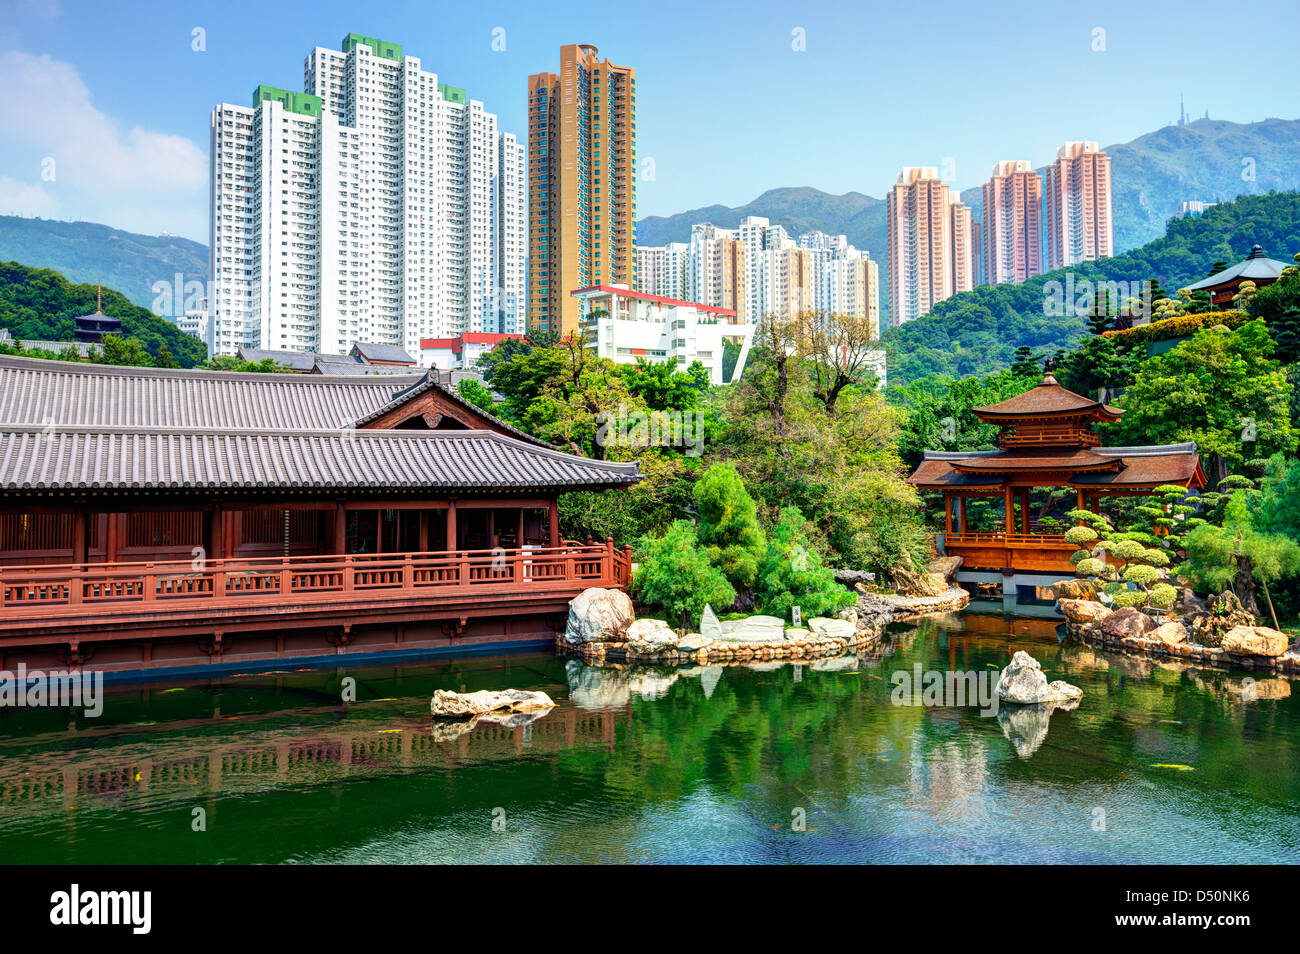 Pond and cityscape viewed from Nan Lian Garden in Hong Kong, China. - Stock Image